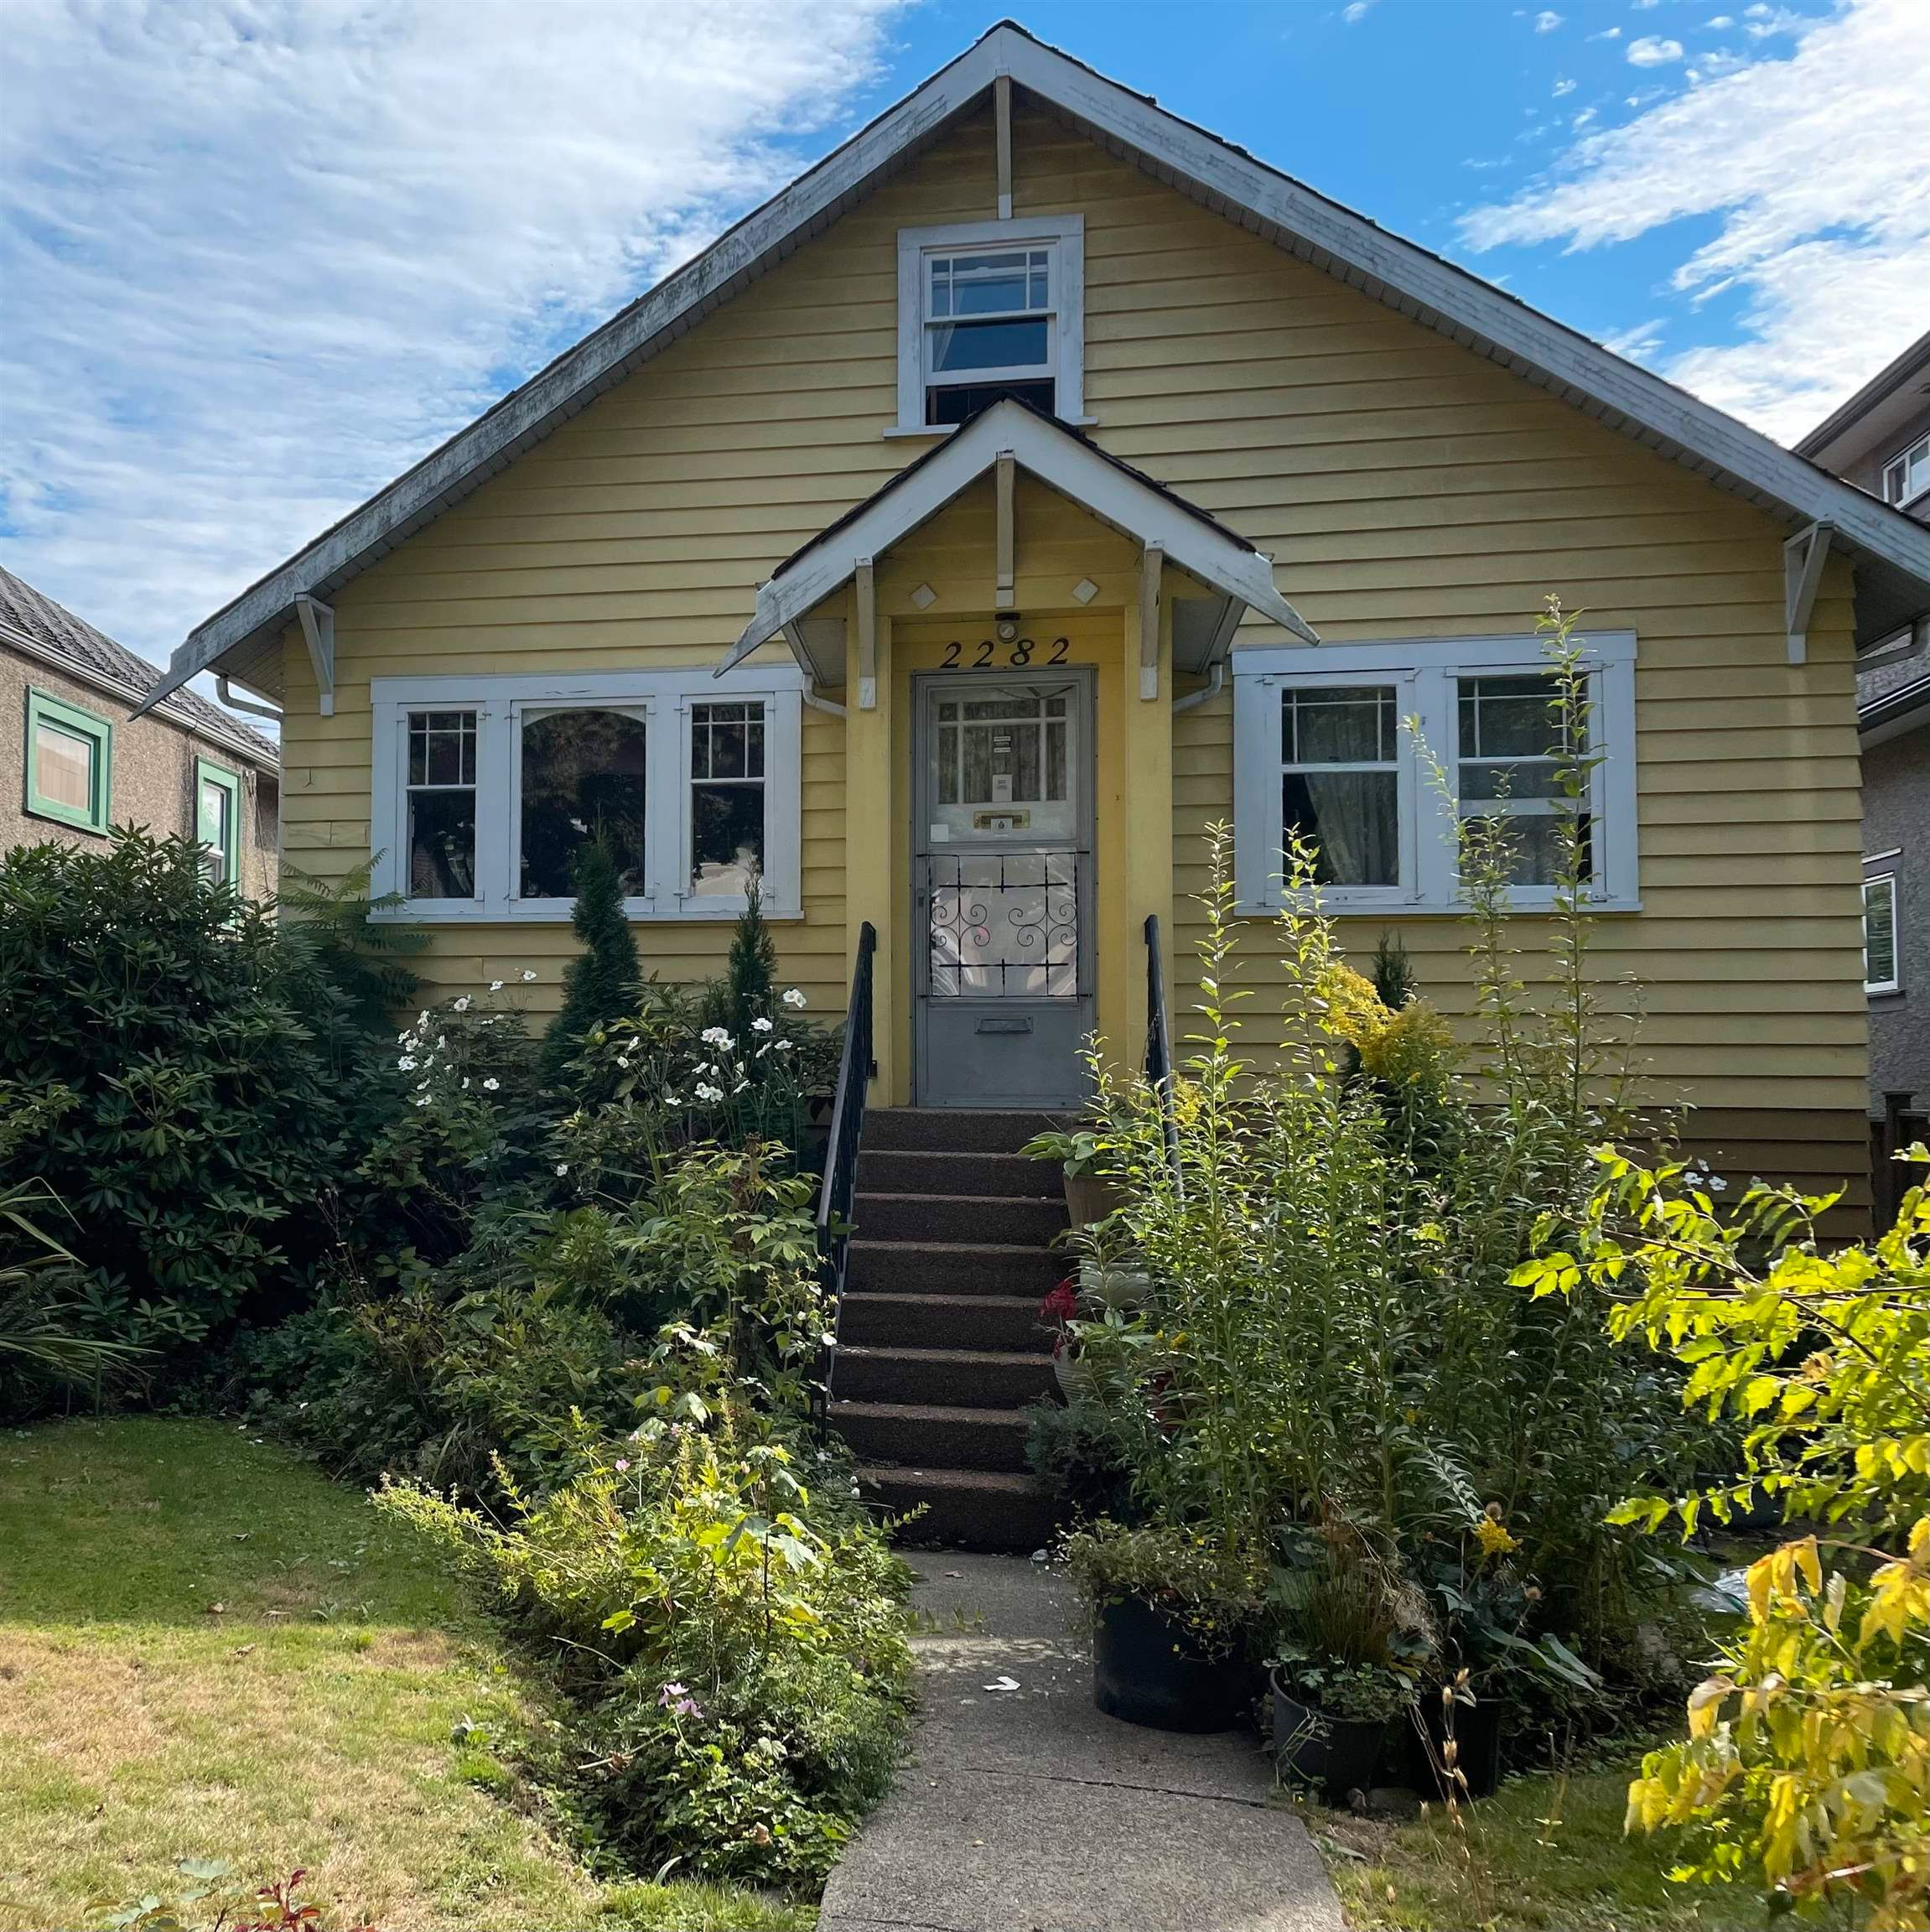 Main Photo: 2282 E 8TH Avenue in Vancouver: Grandview Woodland House for sale (Vancouver East)  : MLS®# R2618473